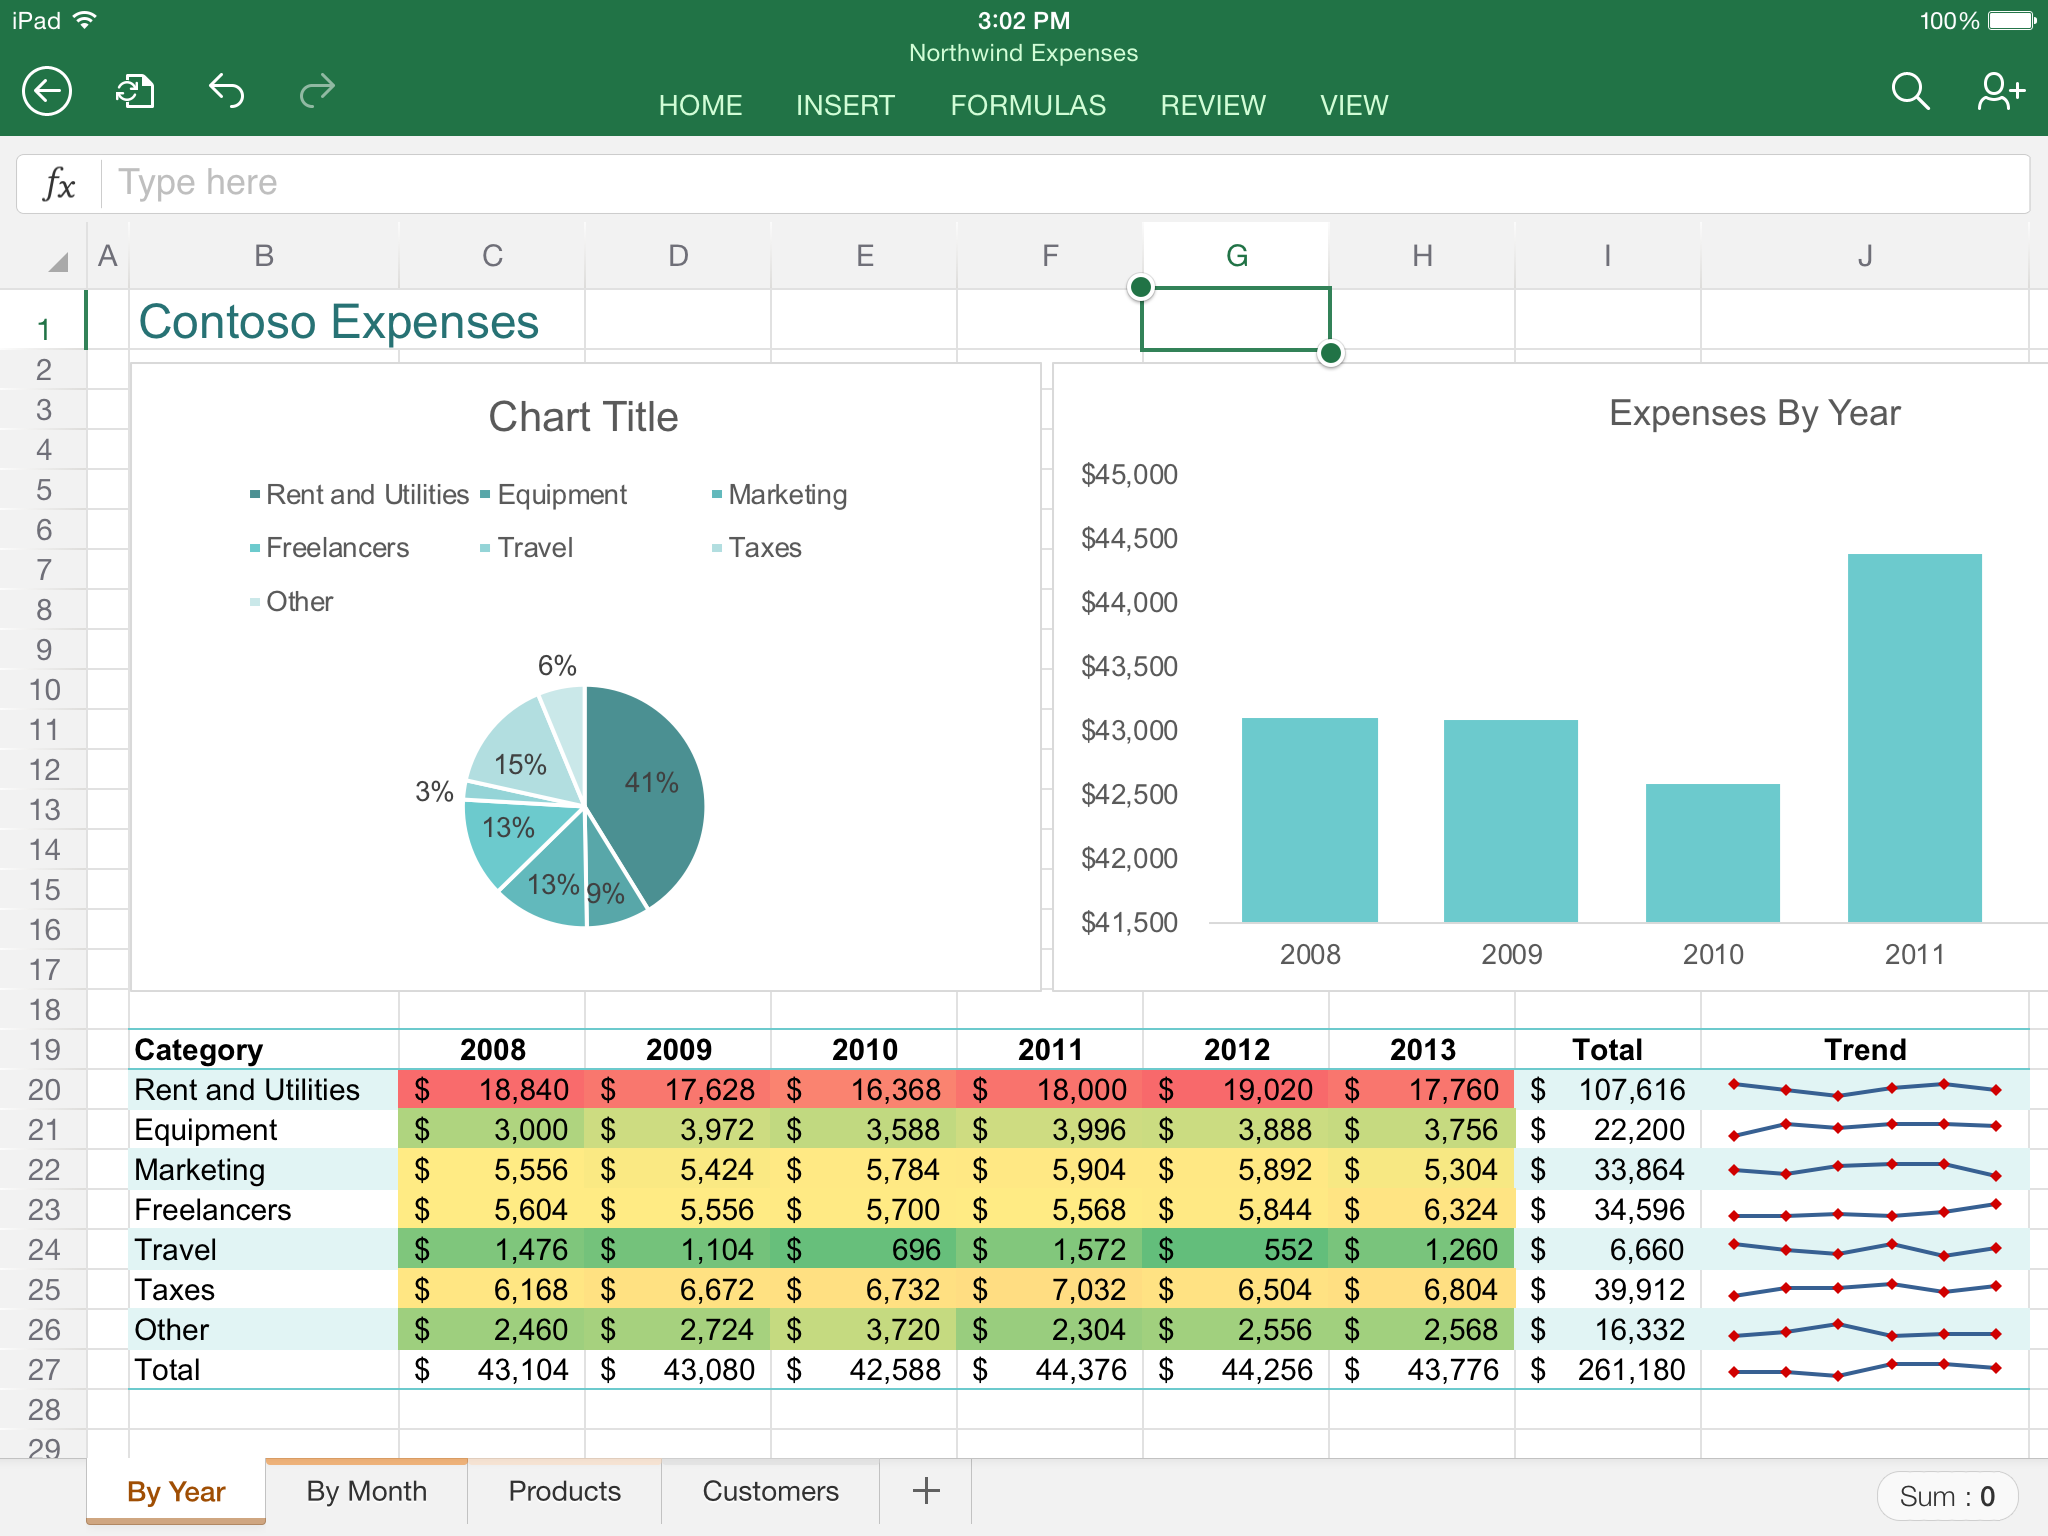 Ediblewildsus  Fascinating App Highlight Excel  Mobile Digital Now With Heavenly Excel In Action With Cute If Count Excel Also Excel Program For Mac In Addition How To Add A Title To A Graph In Excel And Excel Drop Down List From Another Sheet As Well As Advanced Excel Courses Additionally Coefficient Of Correlation In Excel From Youstonybrookedu With Ediblewildsus  Heavenly App Highlight Excel  Mobile Digital Now With Cute Excel In Action And Fascinating If Count Excel Also Excel Program For Mac In Addition How To Add A Title To A Graph In Excel From Youstonybrookedu